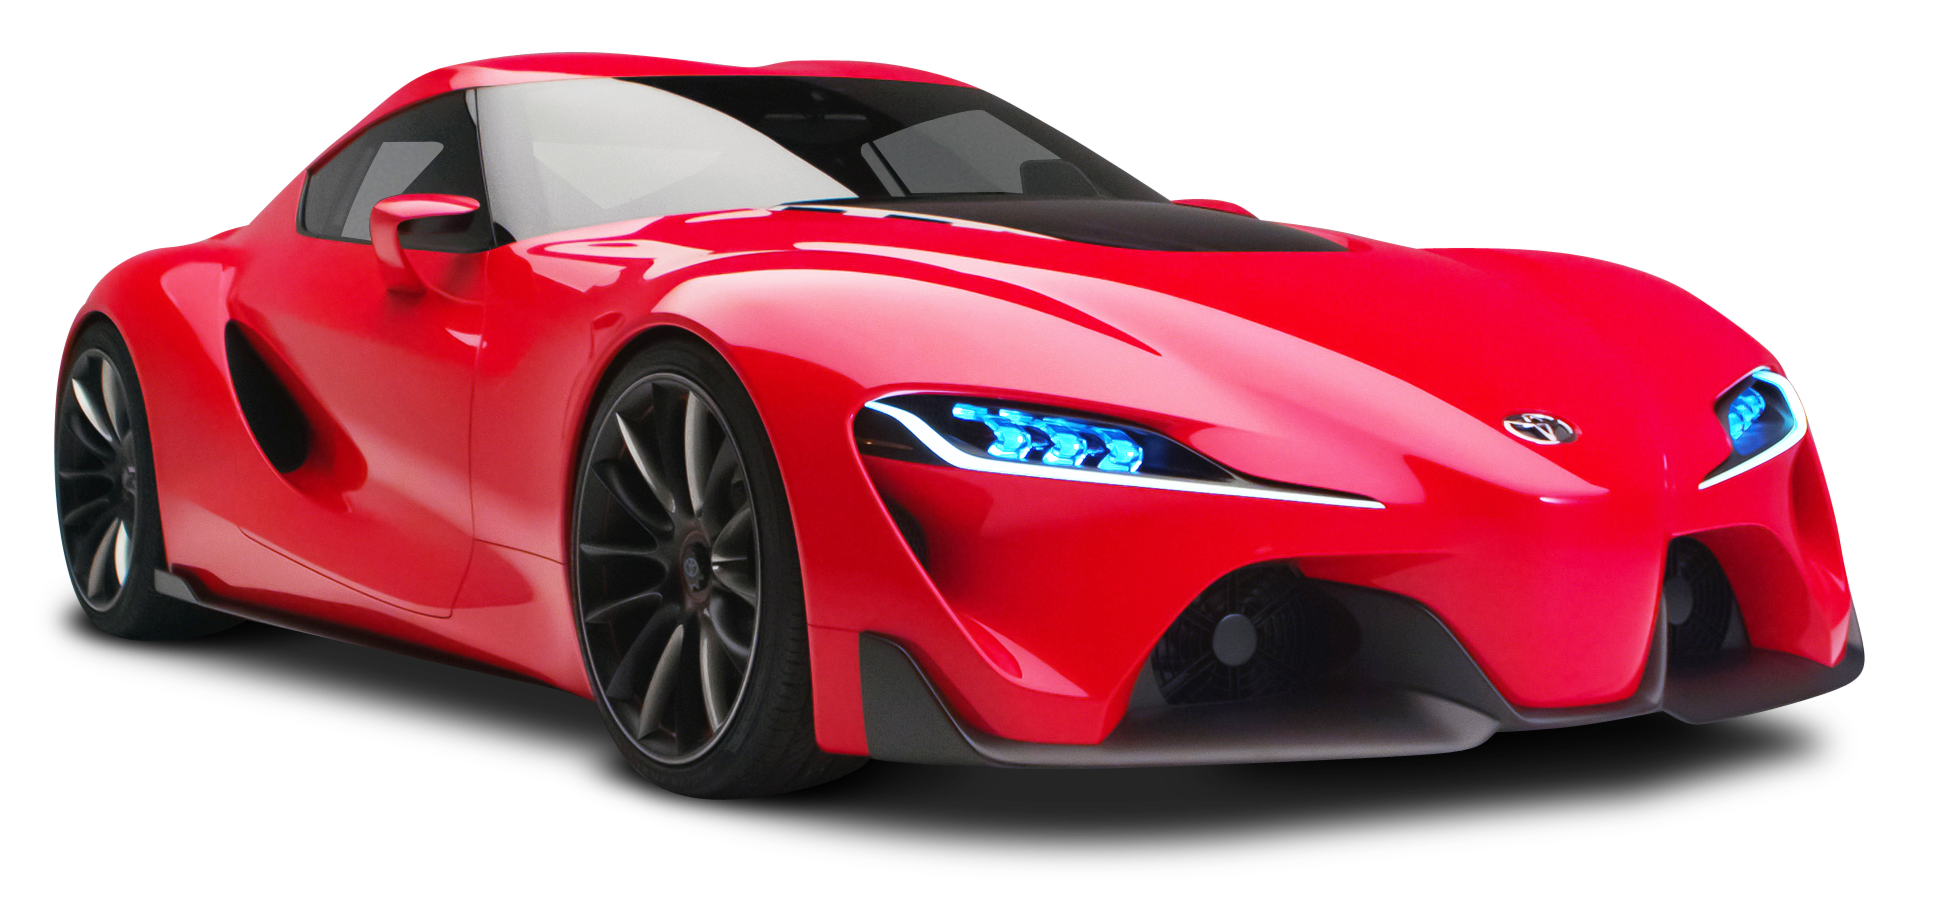 Pin By Charudeal On Cliente Funeraria New Toyota Supra Concept Cars Toyota Supra